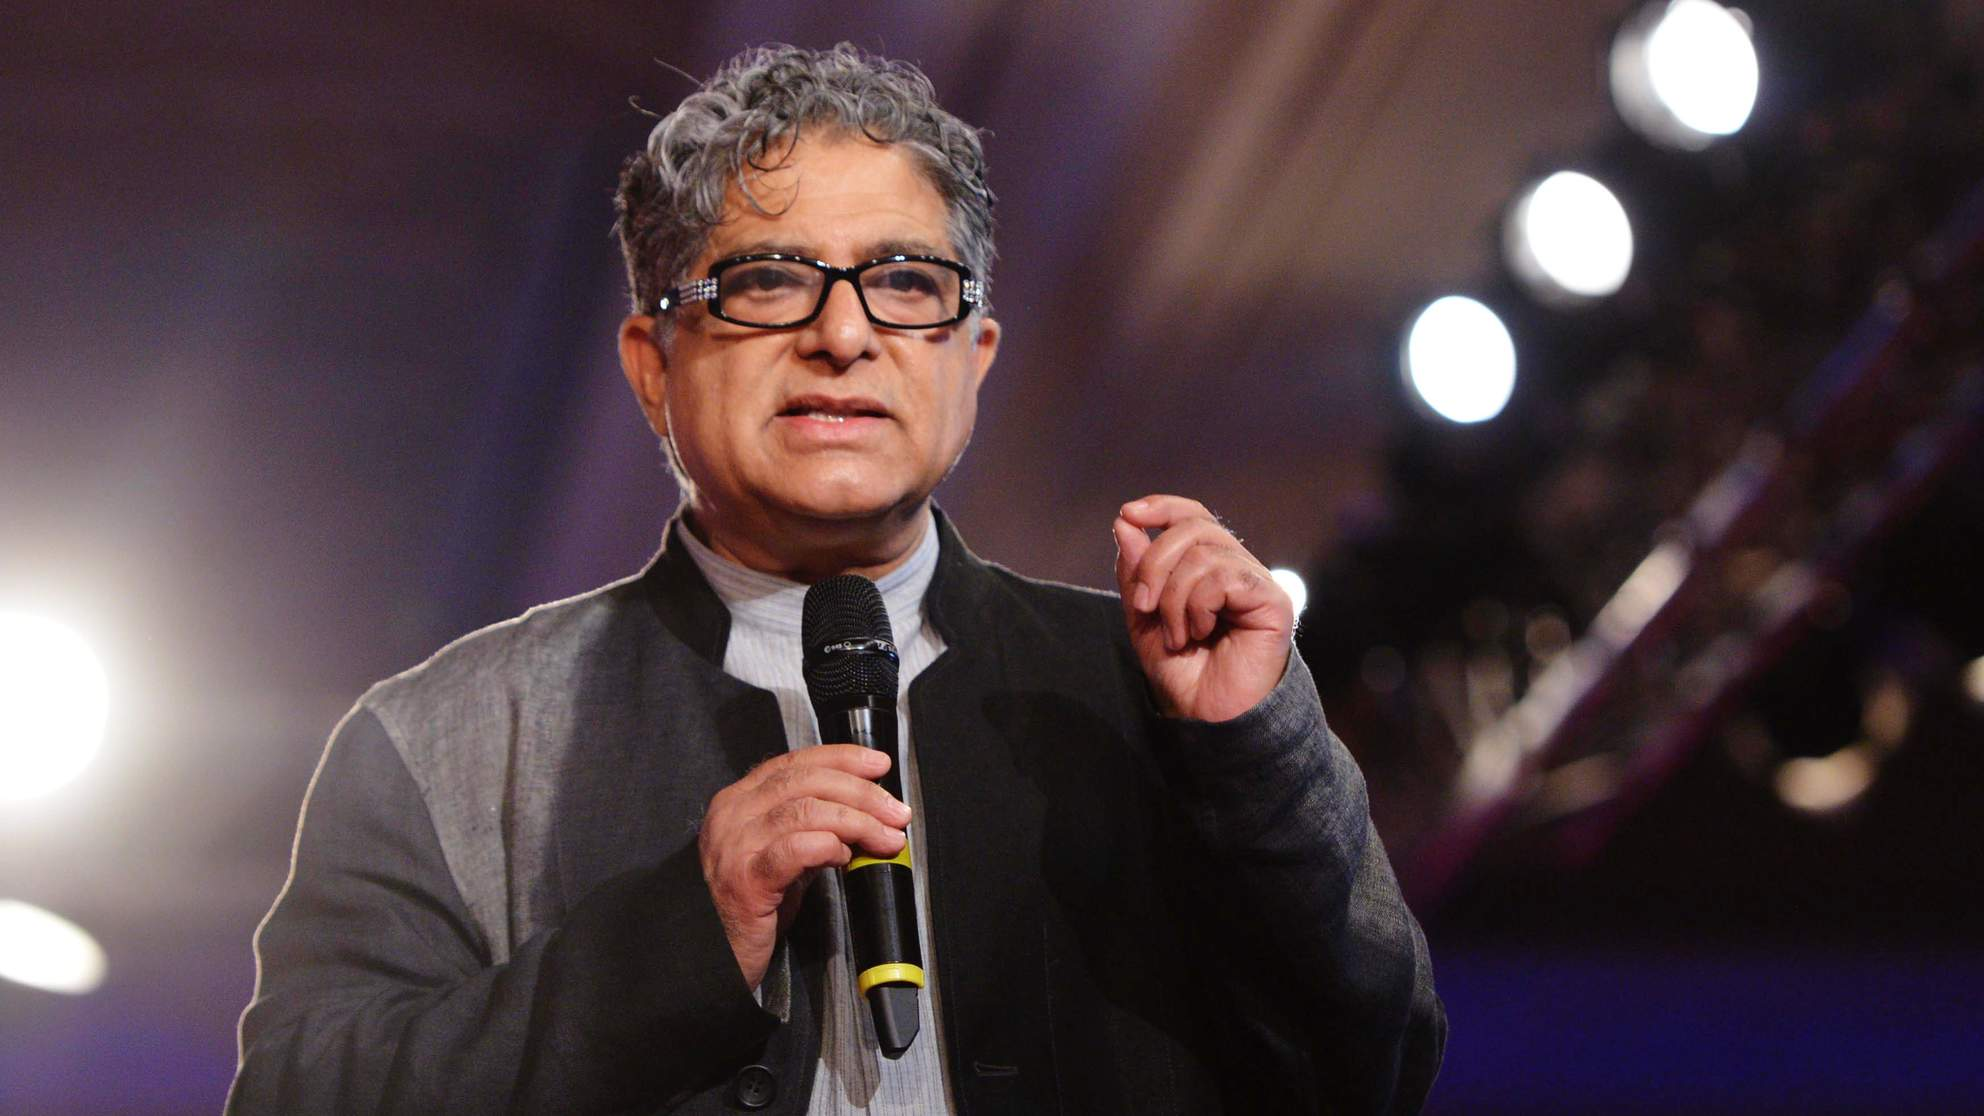 Dr. Deepak Chopra Shares His Tips for Managing Anxiety and Making a Personal Transformation